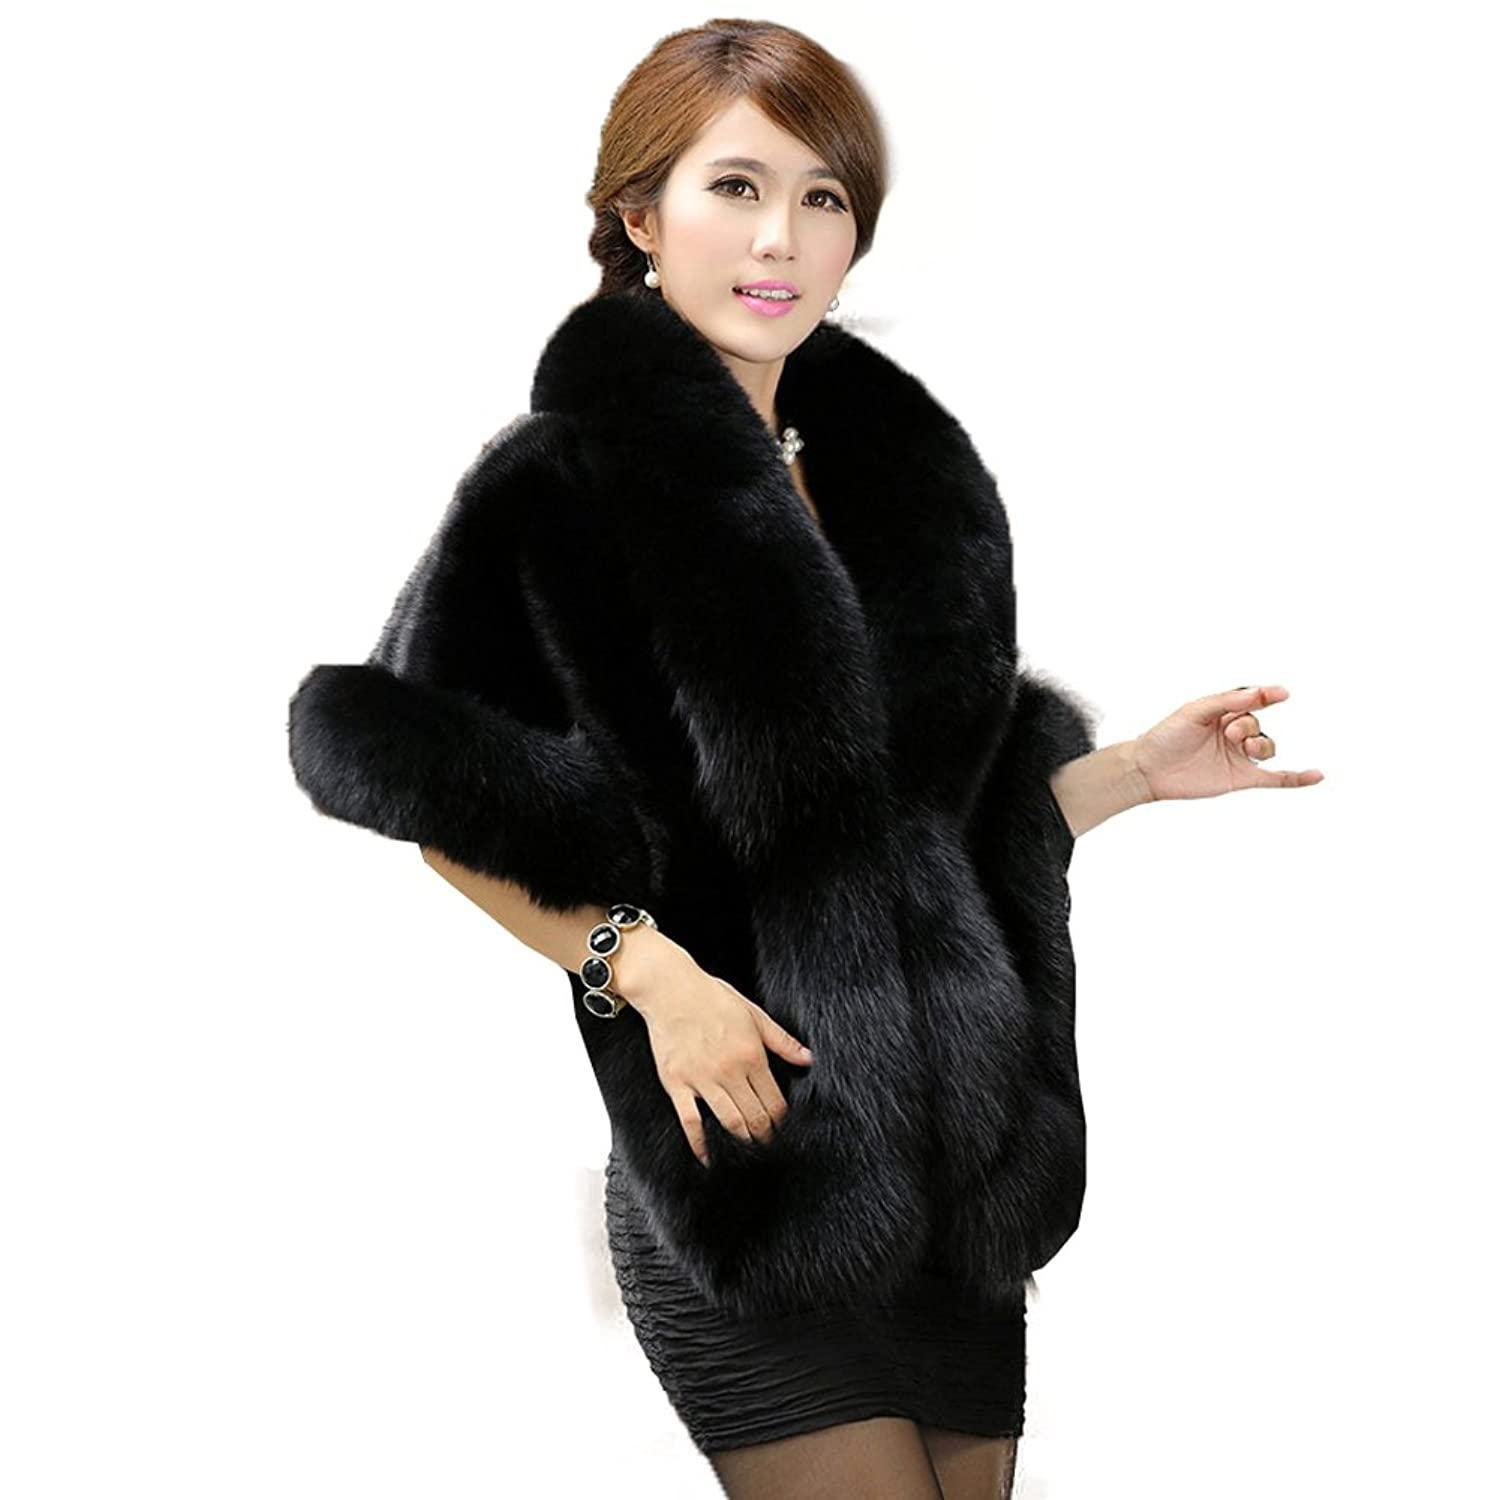 Amazon Best Sellers: Best Women's Fur & Faux Fur Jackets & Coats